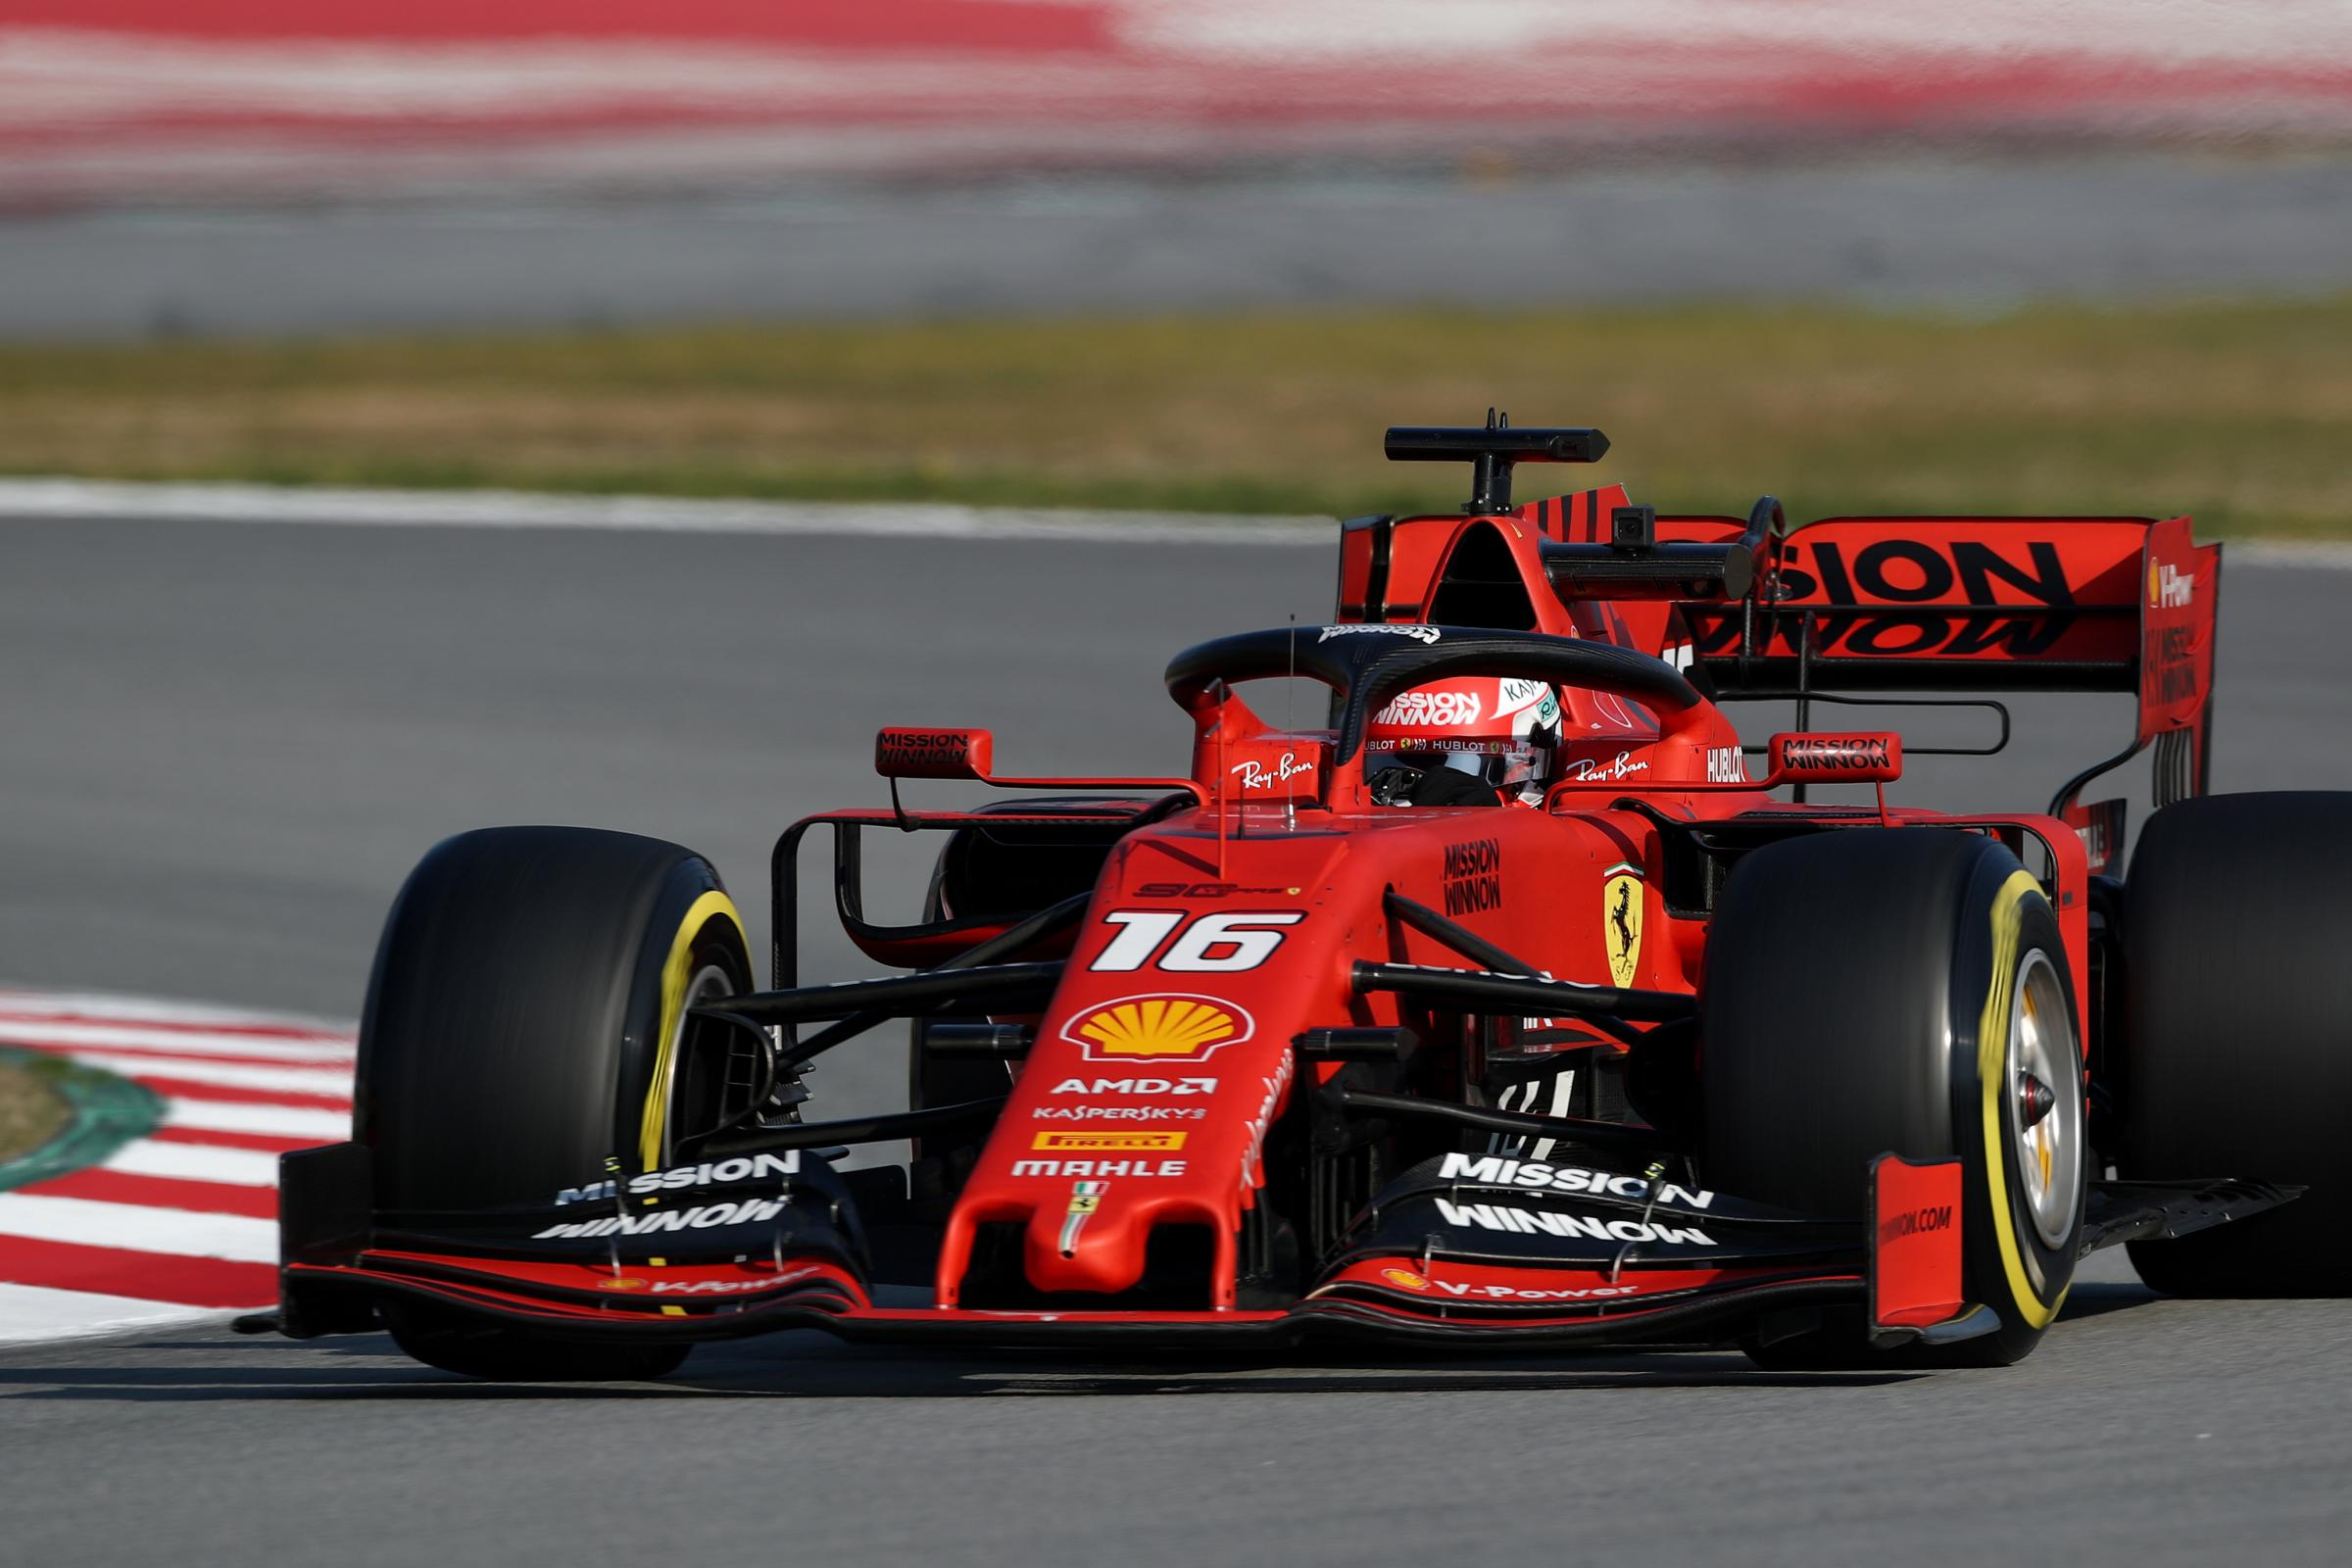 Ferrari appear the team to beat